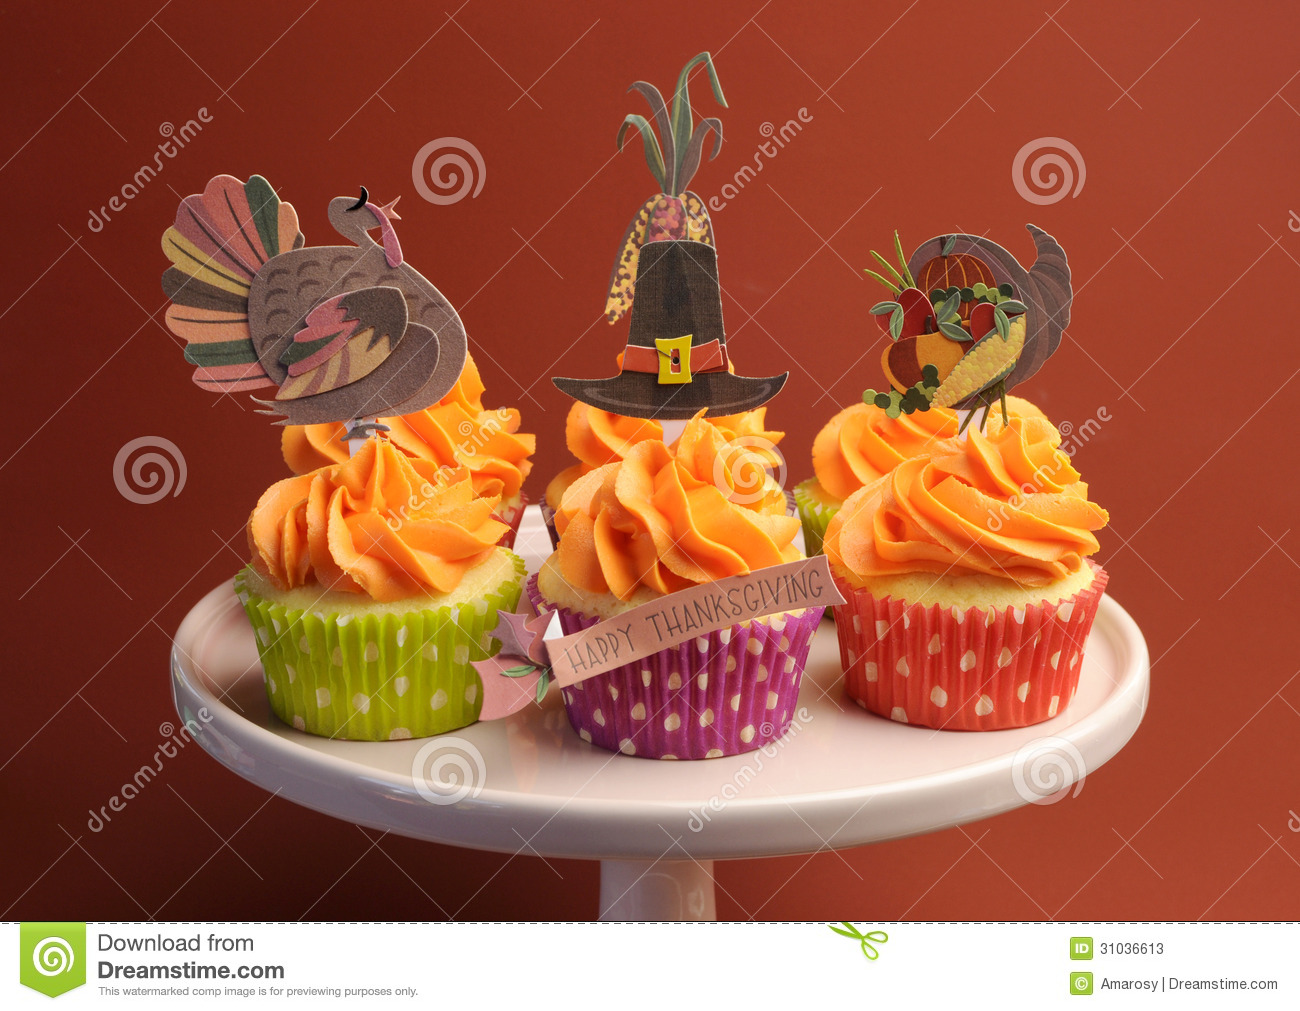 Thanksgiving cupcake decorations - Happy Thanksgiving Decorated Cupcakes On Pink Stand Stock Photos